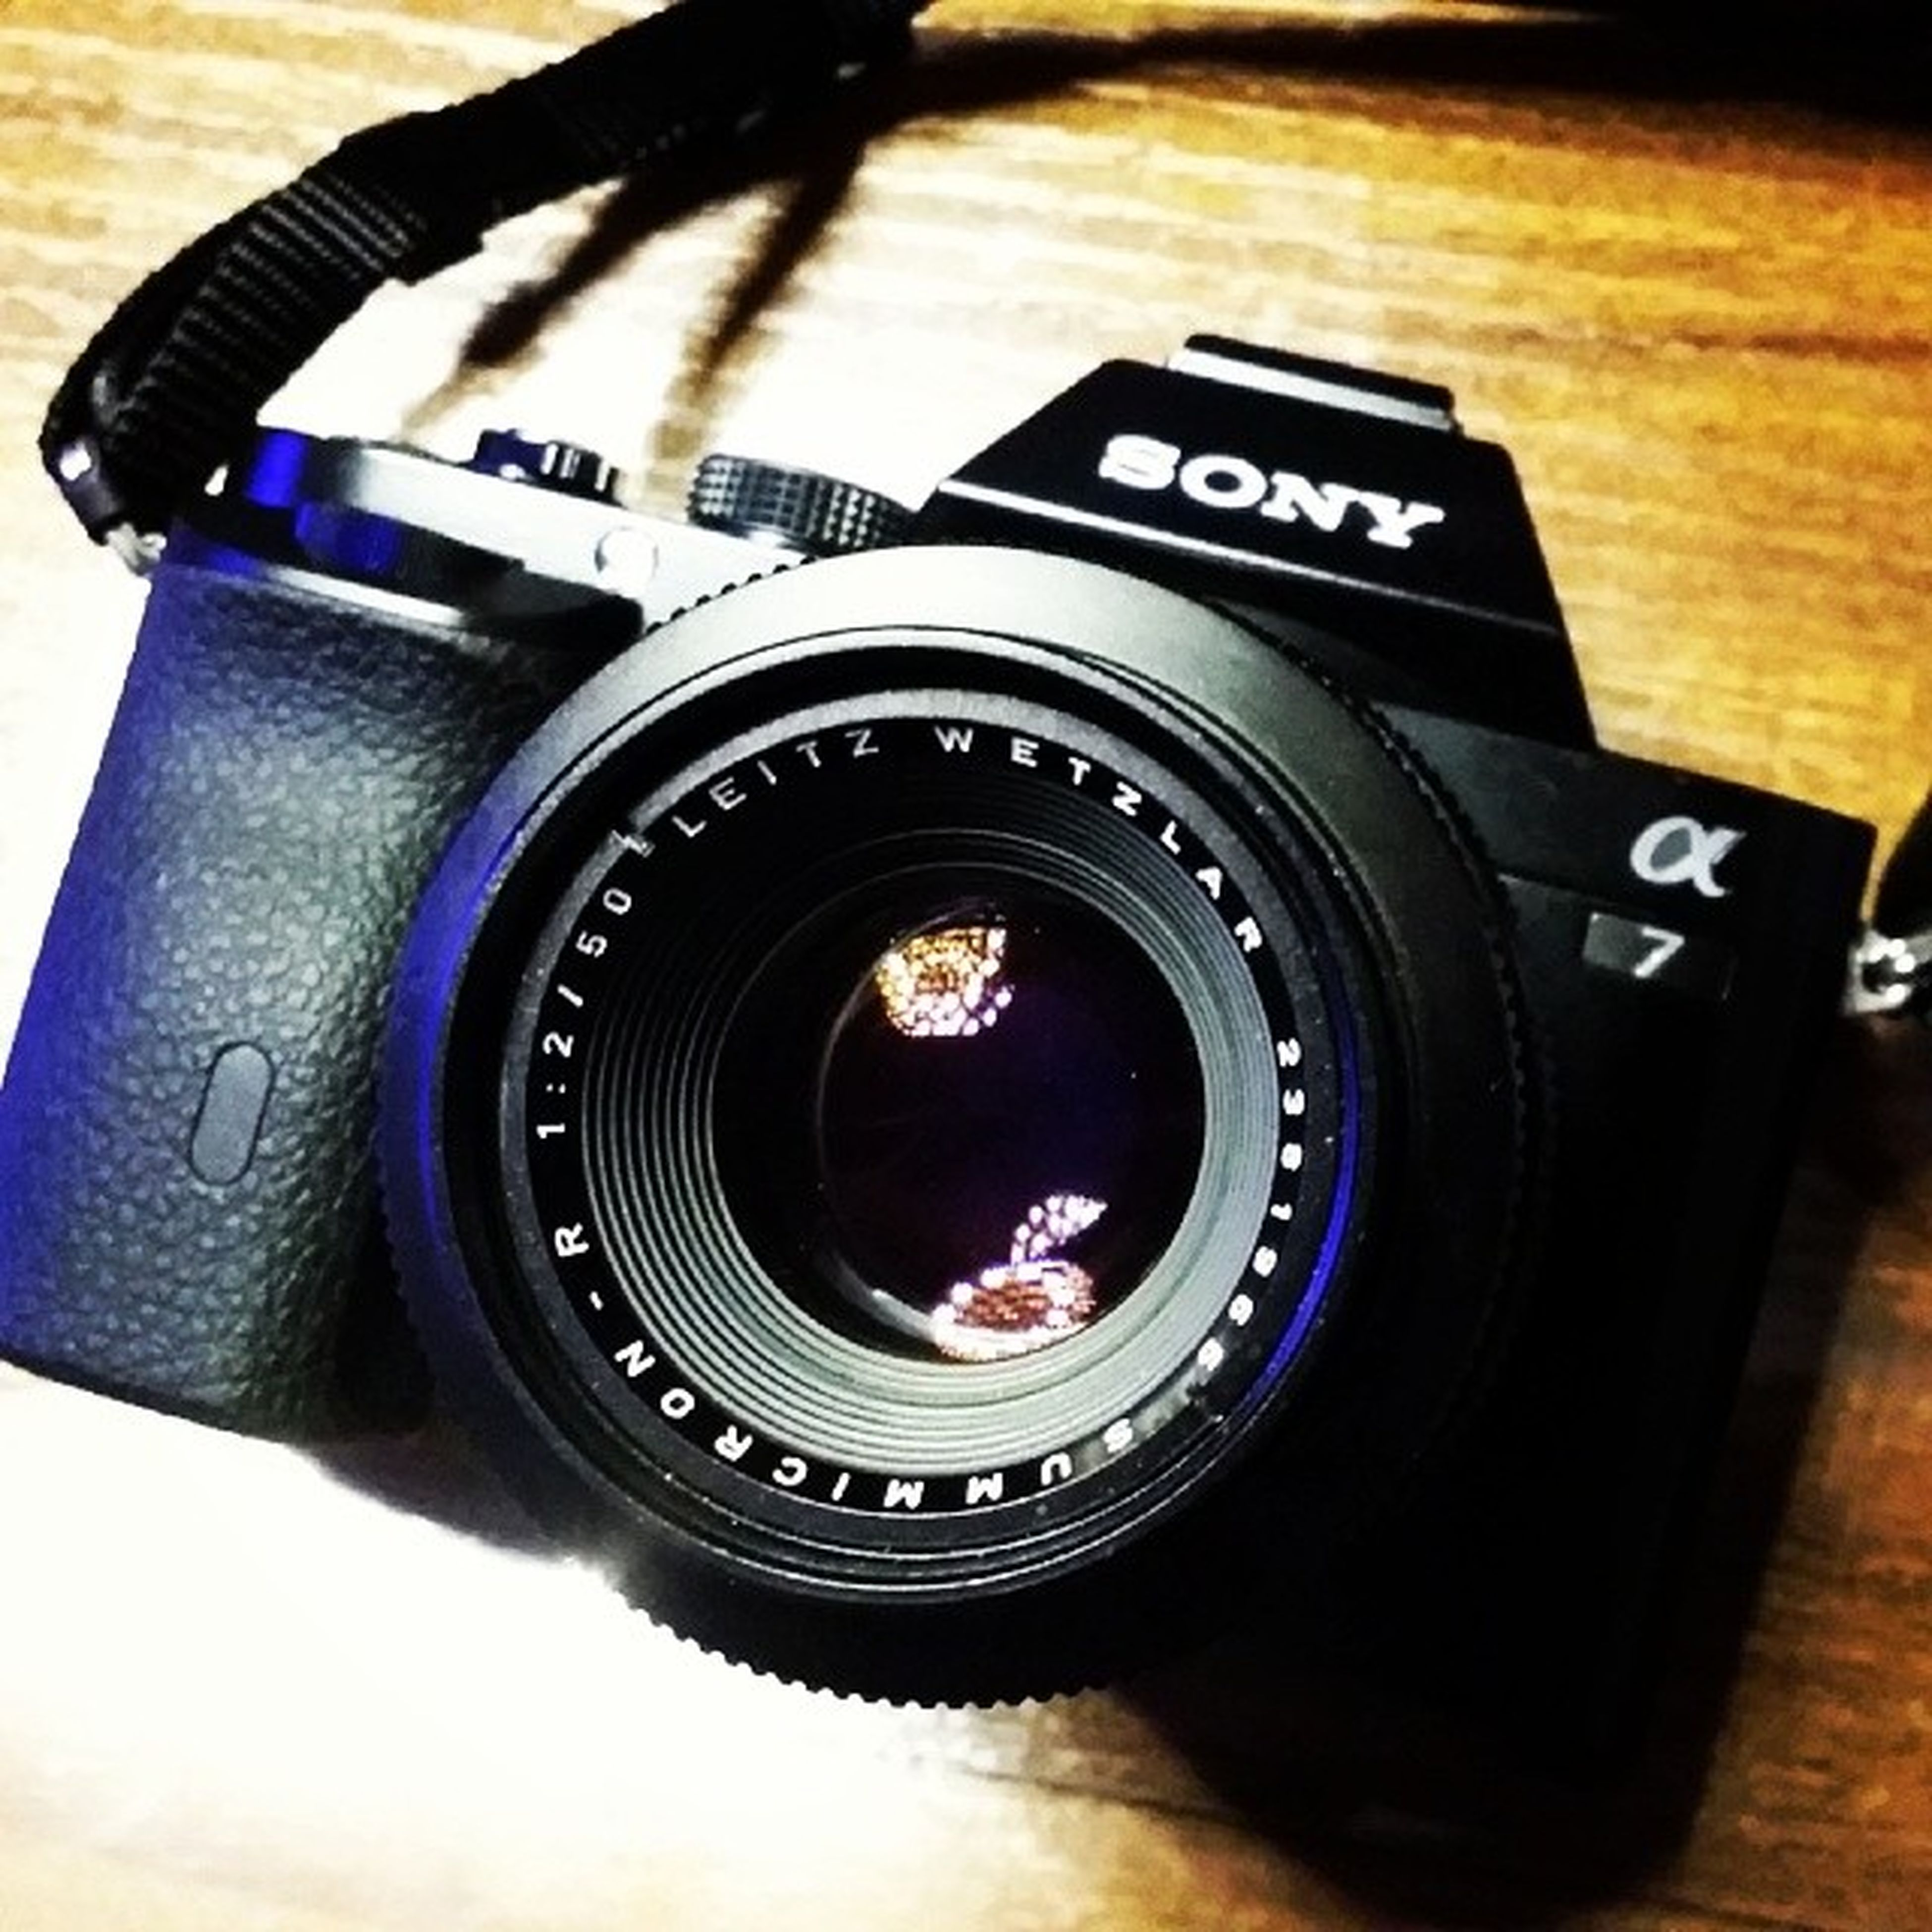 technology, communication, indoors, camera - photographic equipment, photography themes, close-up, text, wireless technology, photographing, number, retro styled, time, digital camera, part of, focus on foreground, lens - optical instrument, old-fashioned, western script, smart phone, music